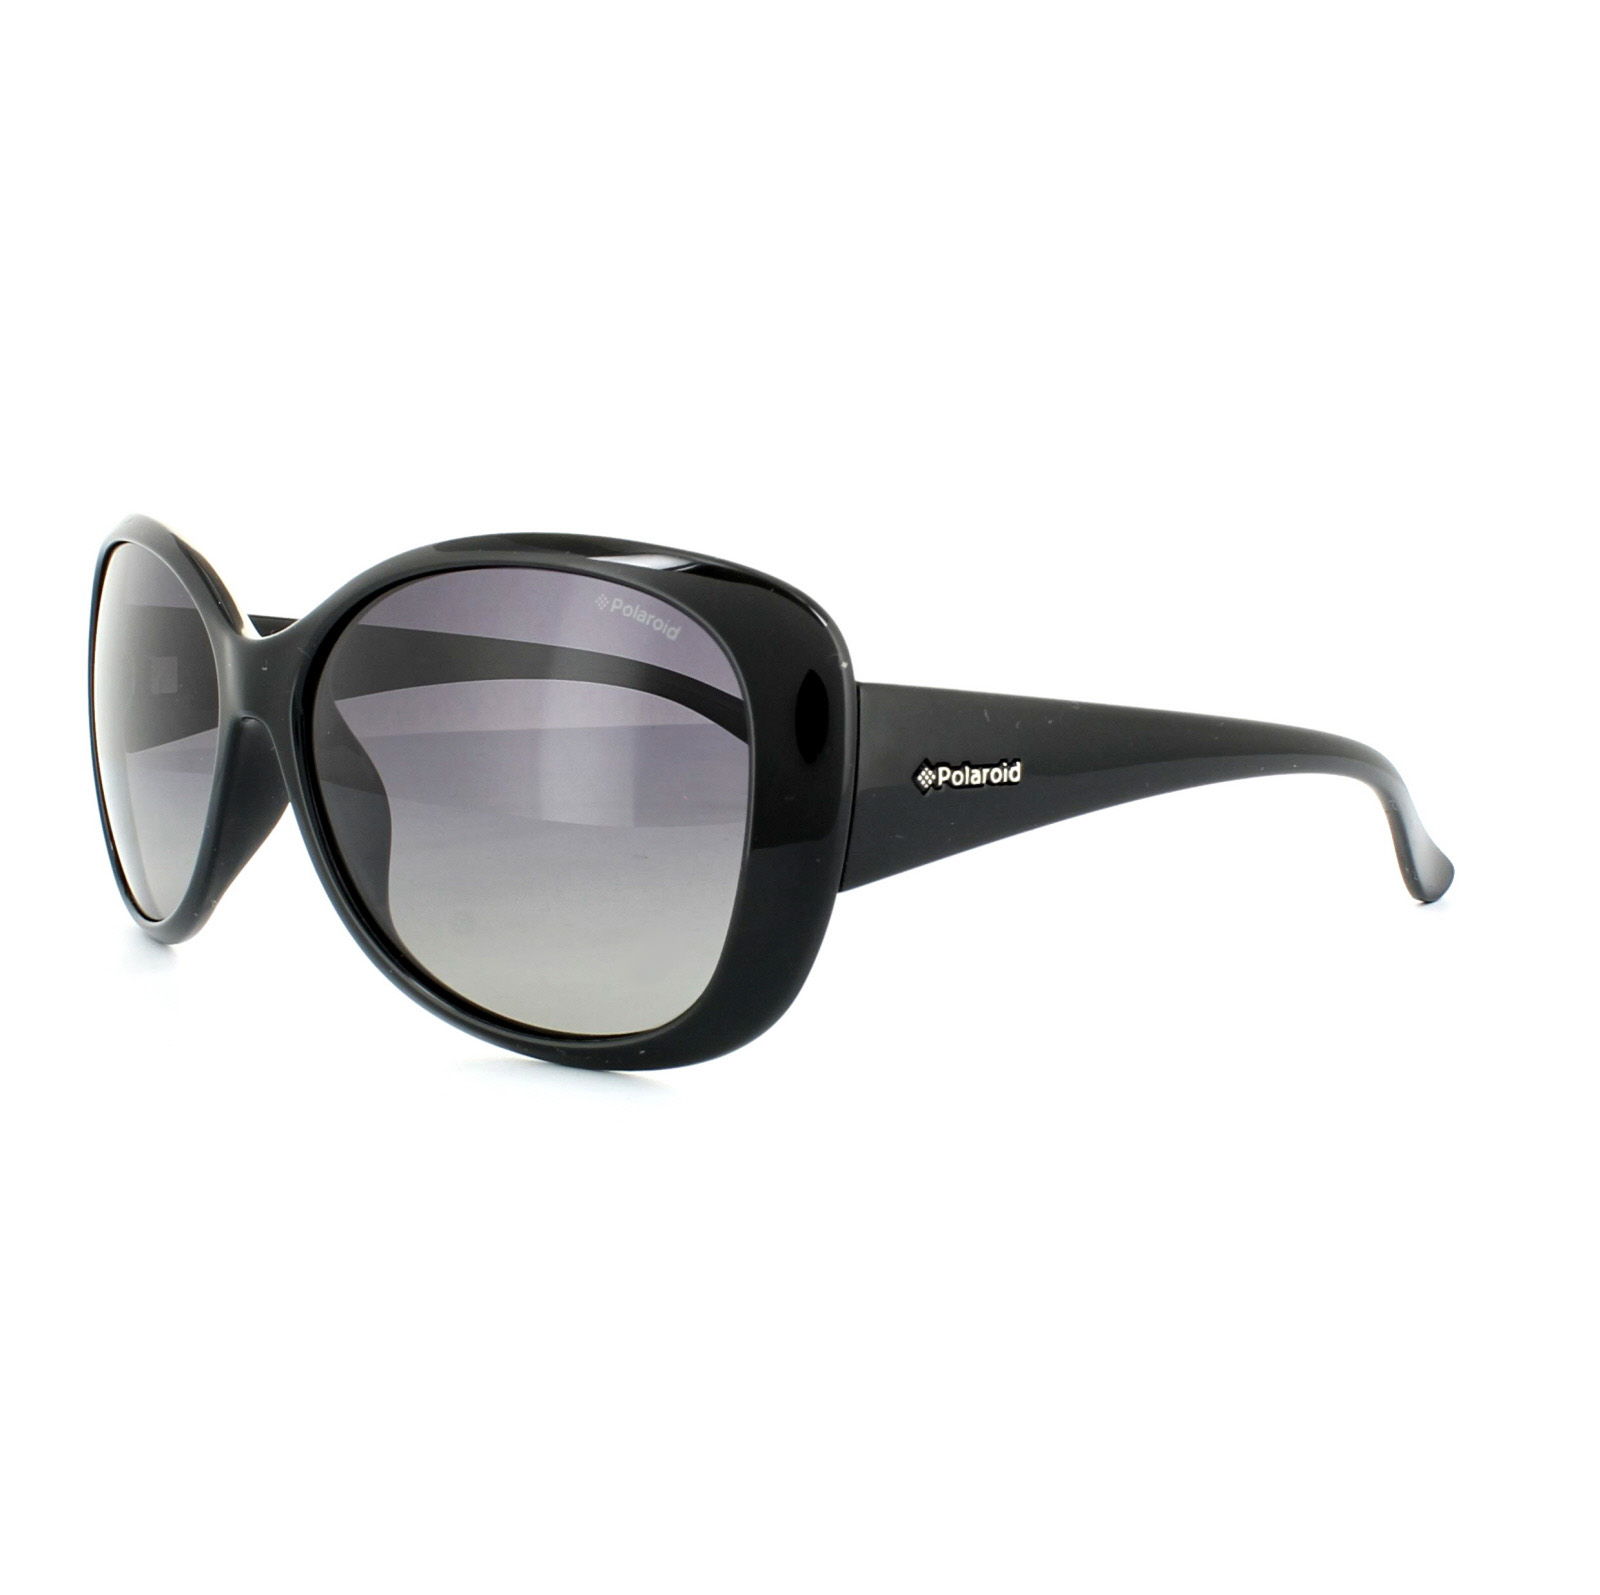 6c79126c6bce1 Sentinel Polaroid Sunglasses P8317 KIH IX Black Grey Gradient Polarized